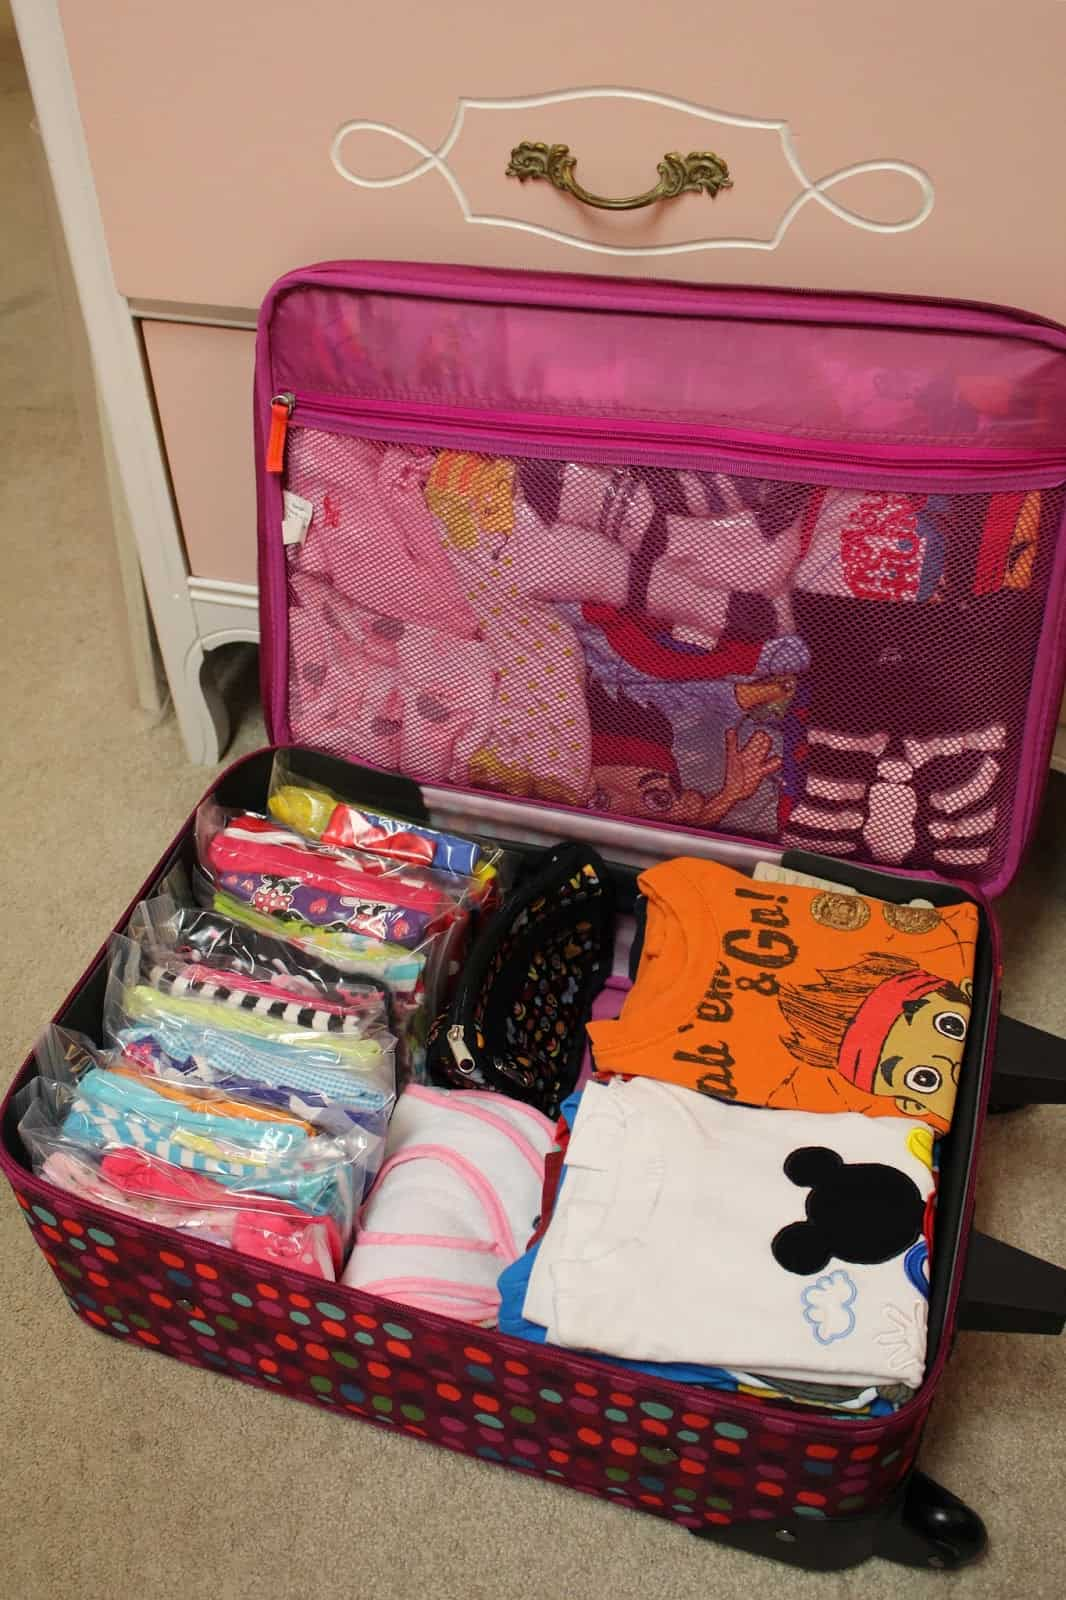 Tips for packing when you travel with kids